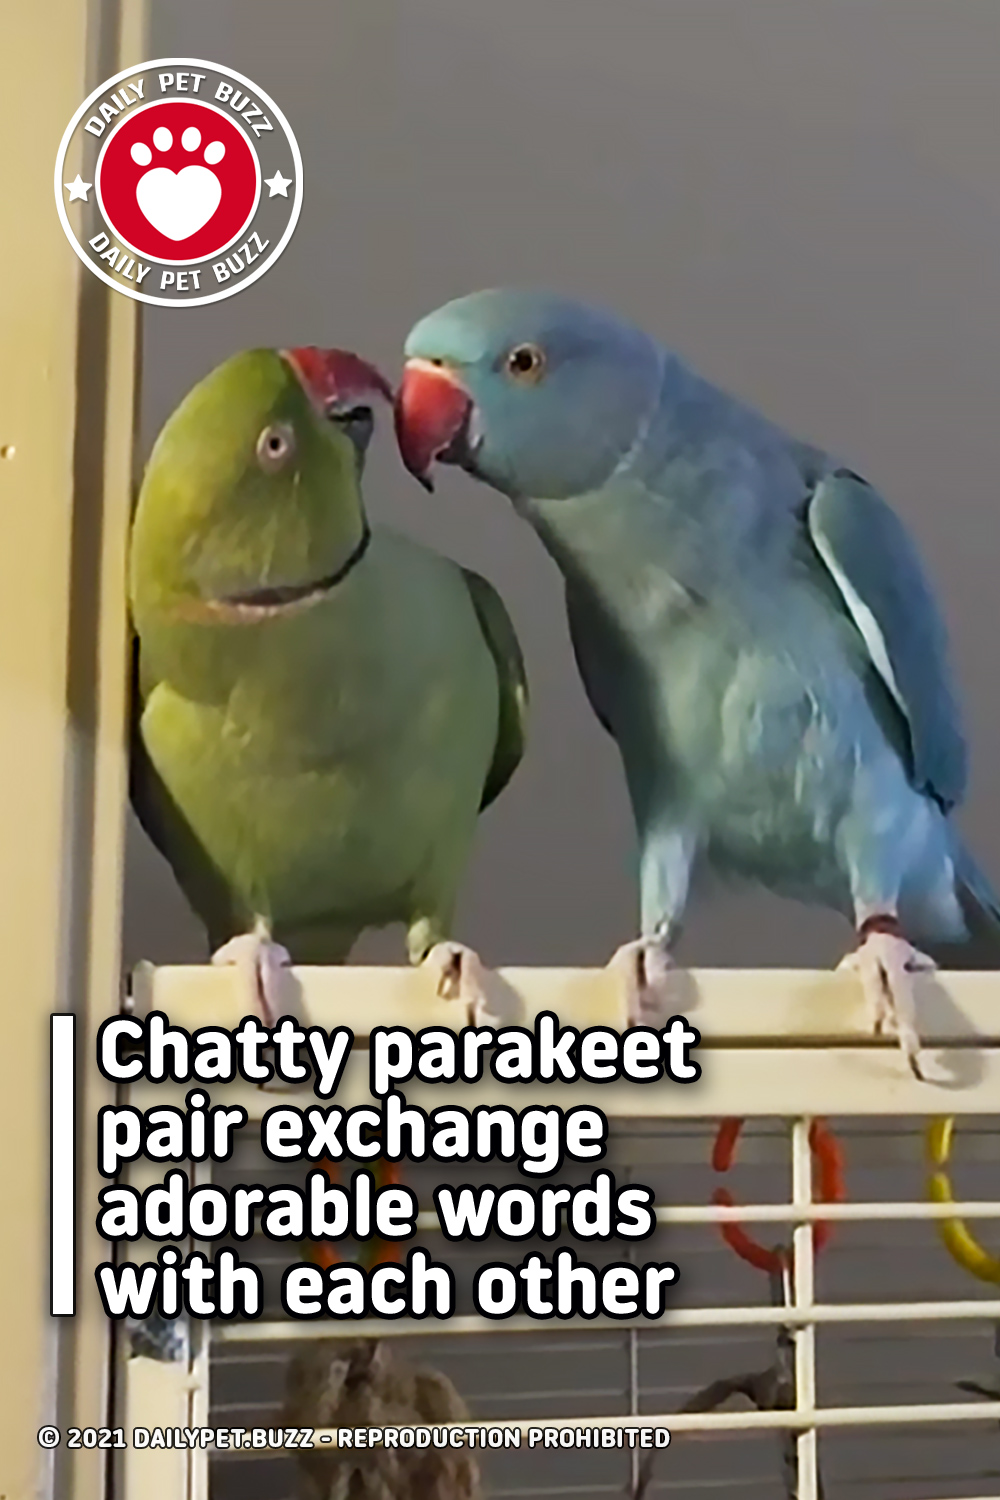 Chatty parakeet pair exchange adorable words with each other